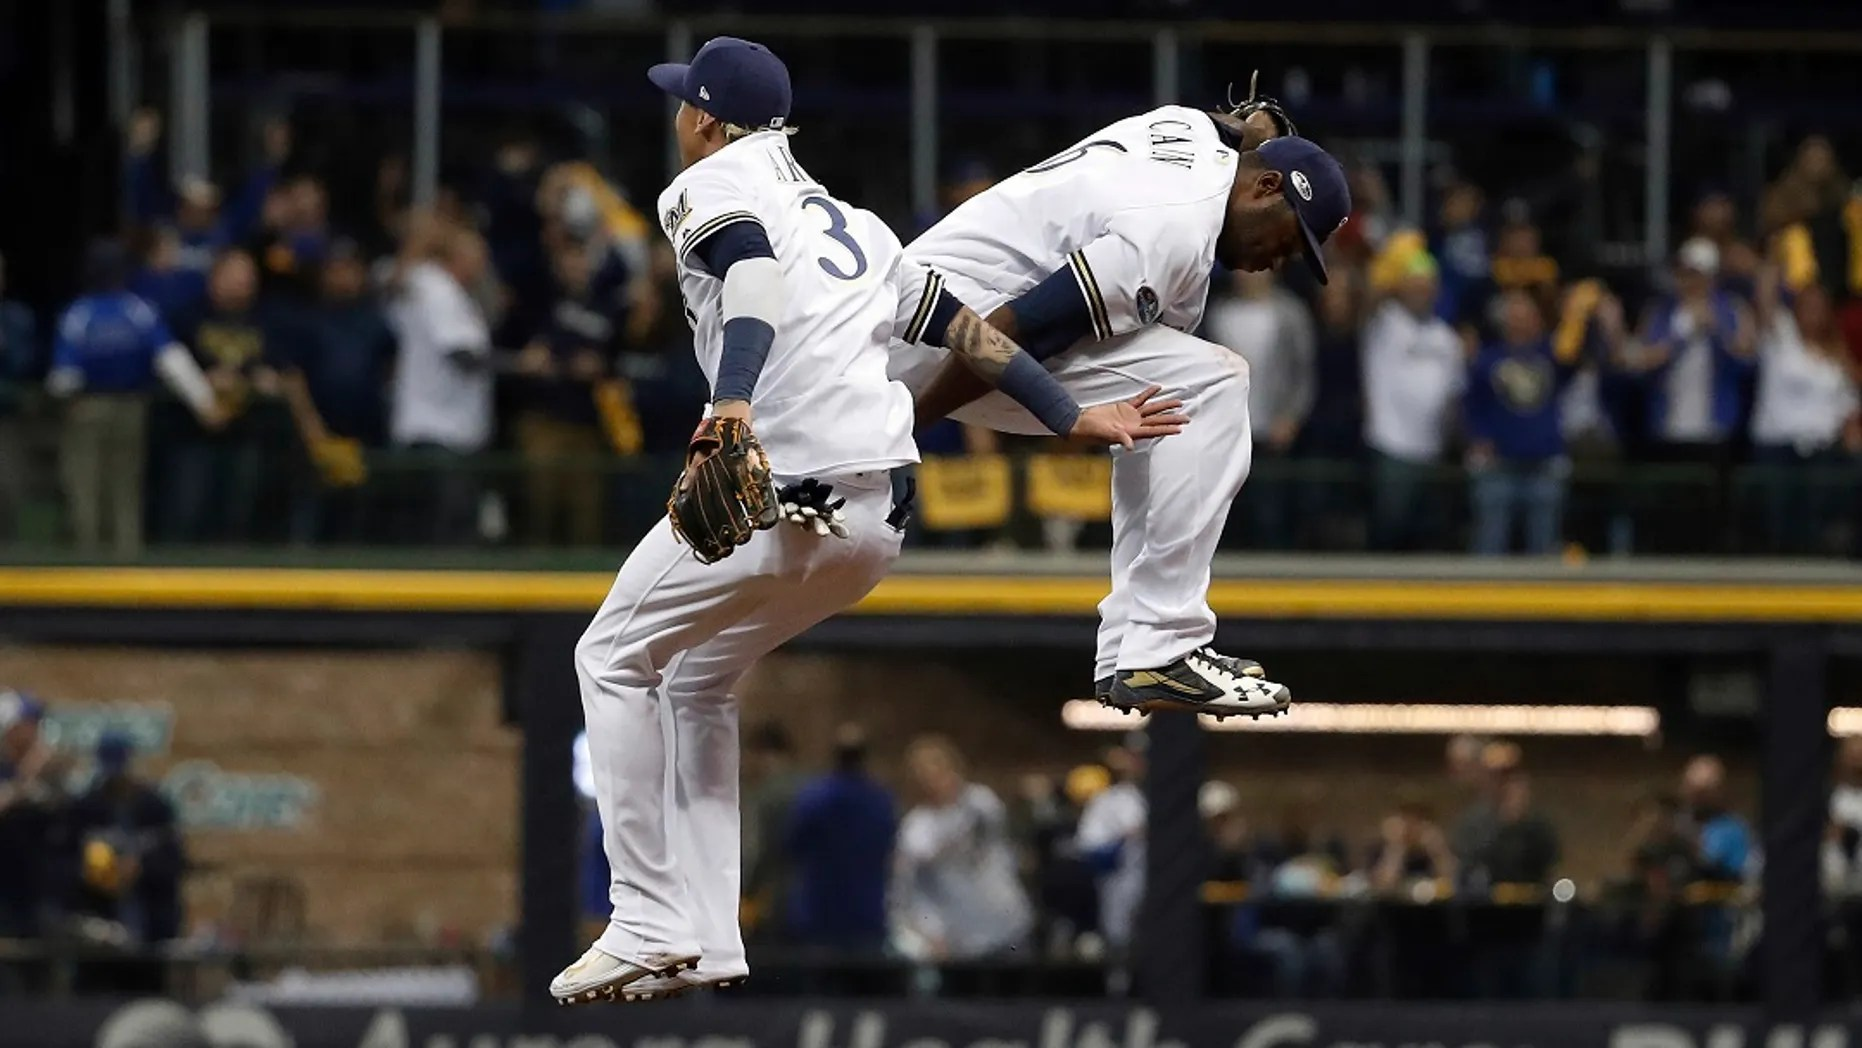 file - Milwaukee Brewers' Orlando Arcia (3) and Lorenzo Cain (6) celebrate after Game 6 of the National League Championship Series baseball game against the Los Angeles Dodgers.